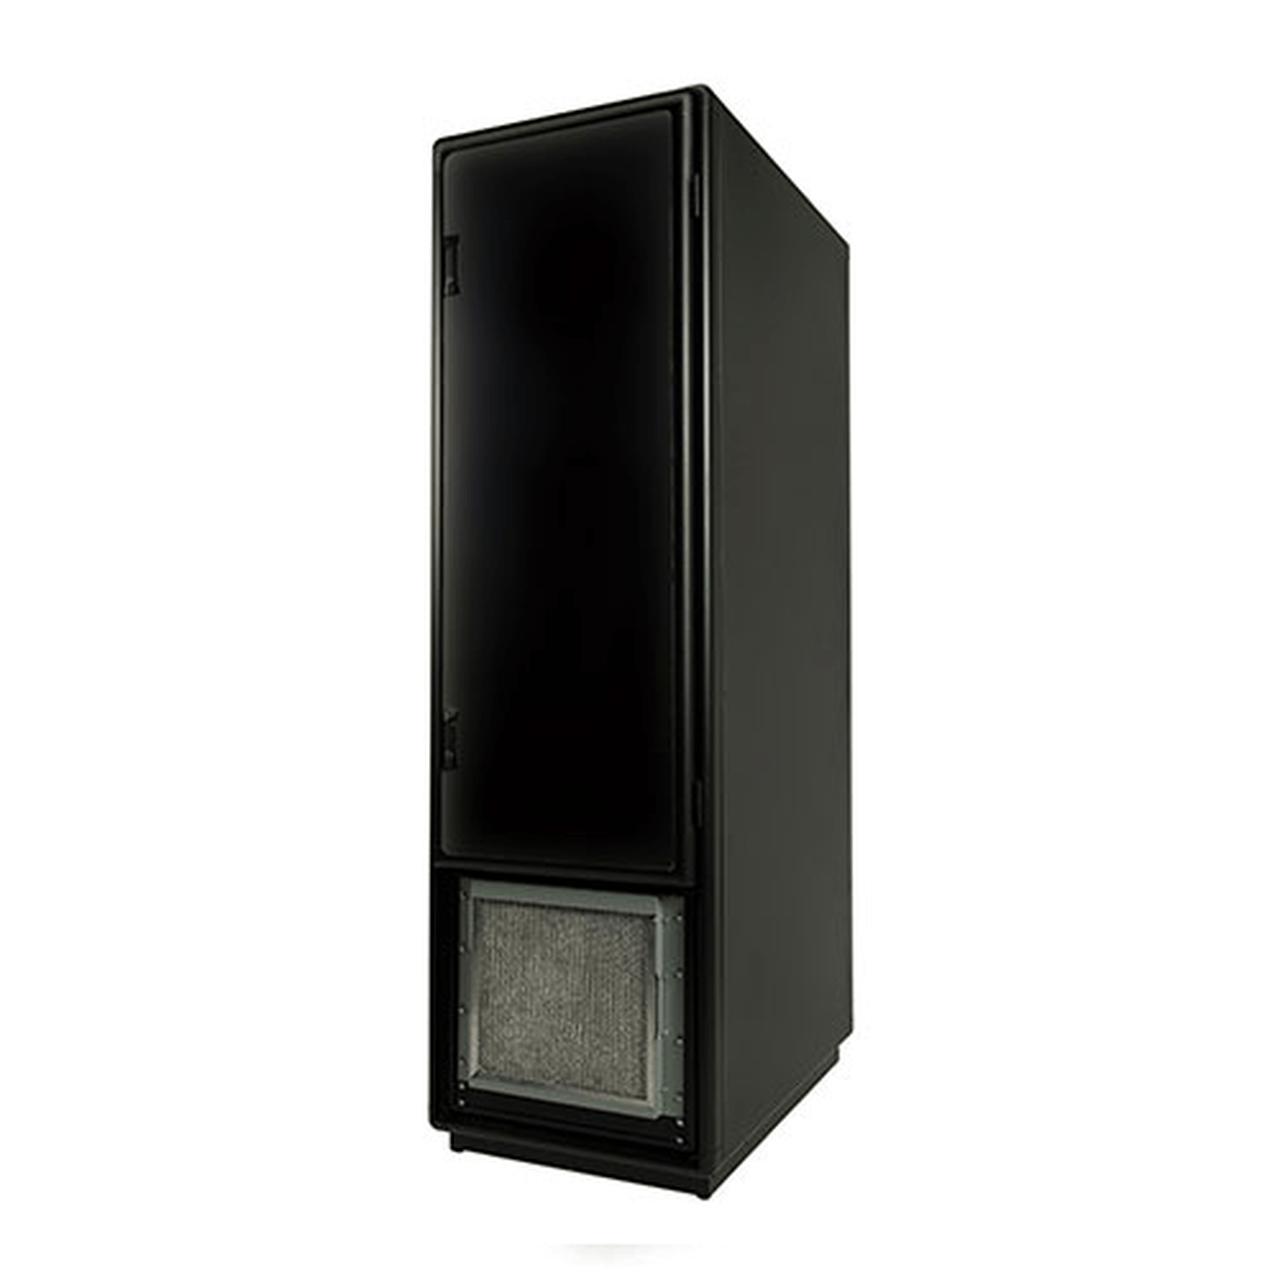 air conditioned server rack cabinet